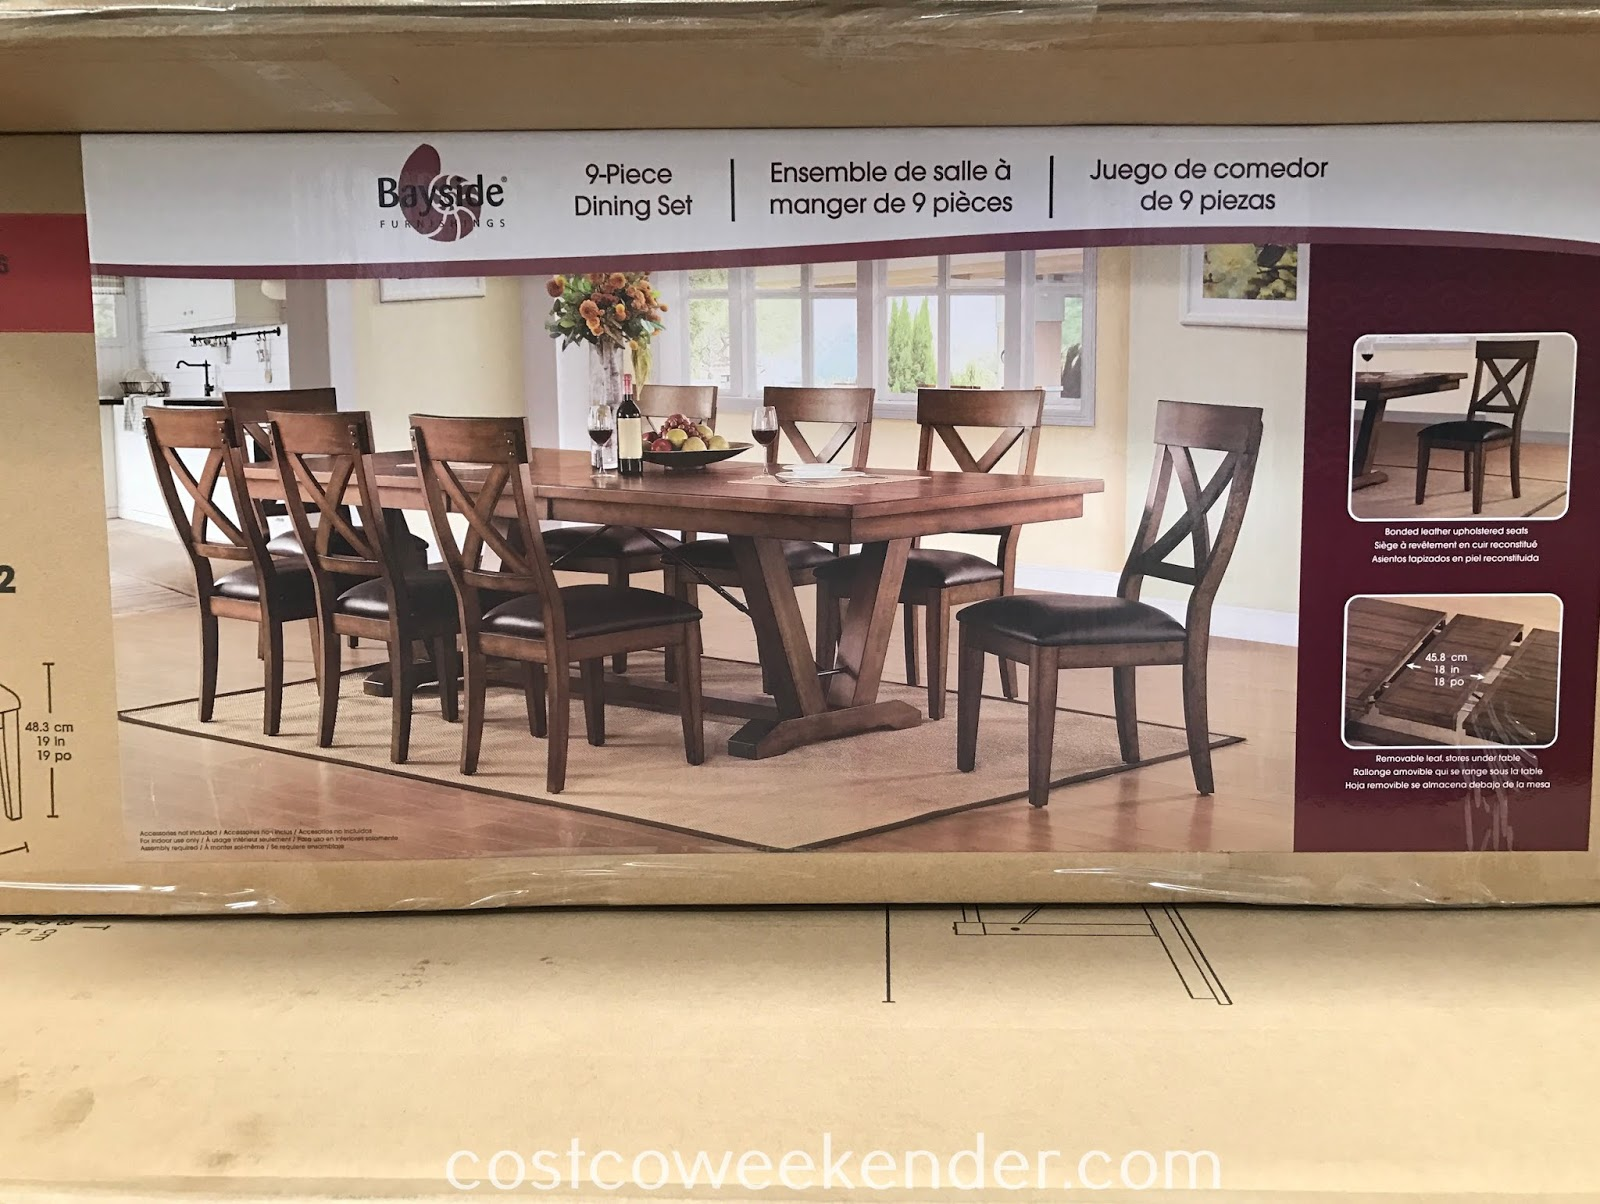 Costco 1119053 - Bayside Furnishings Dining Set provides plenty of seating for you and your family